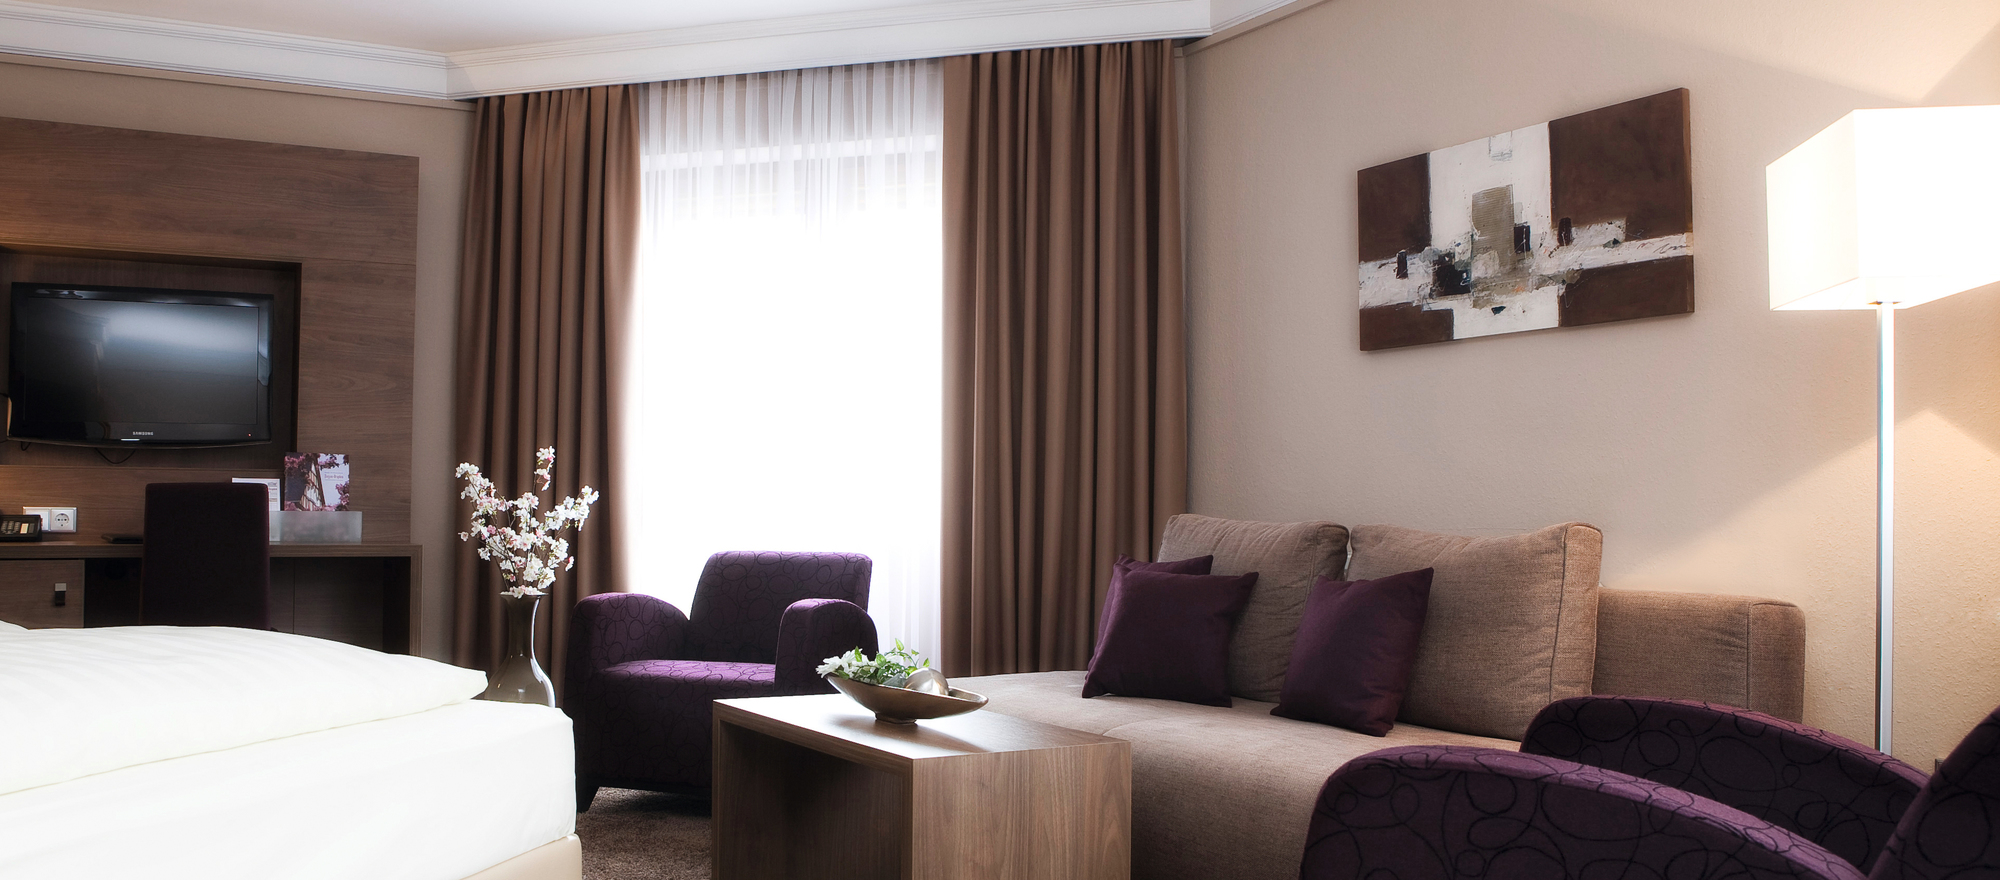 Stylish modern sitting area in the room of the 4-star hotel Ringhotel Nassau-Oranien in Limburg/Hadamar